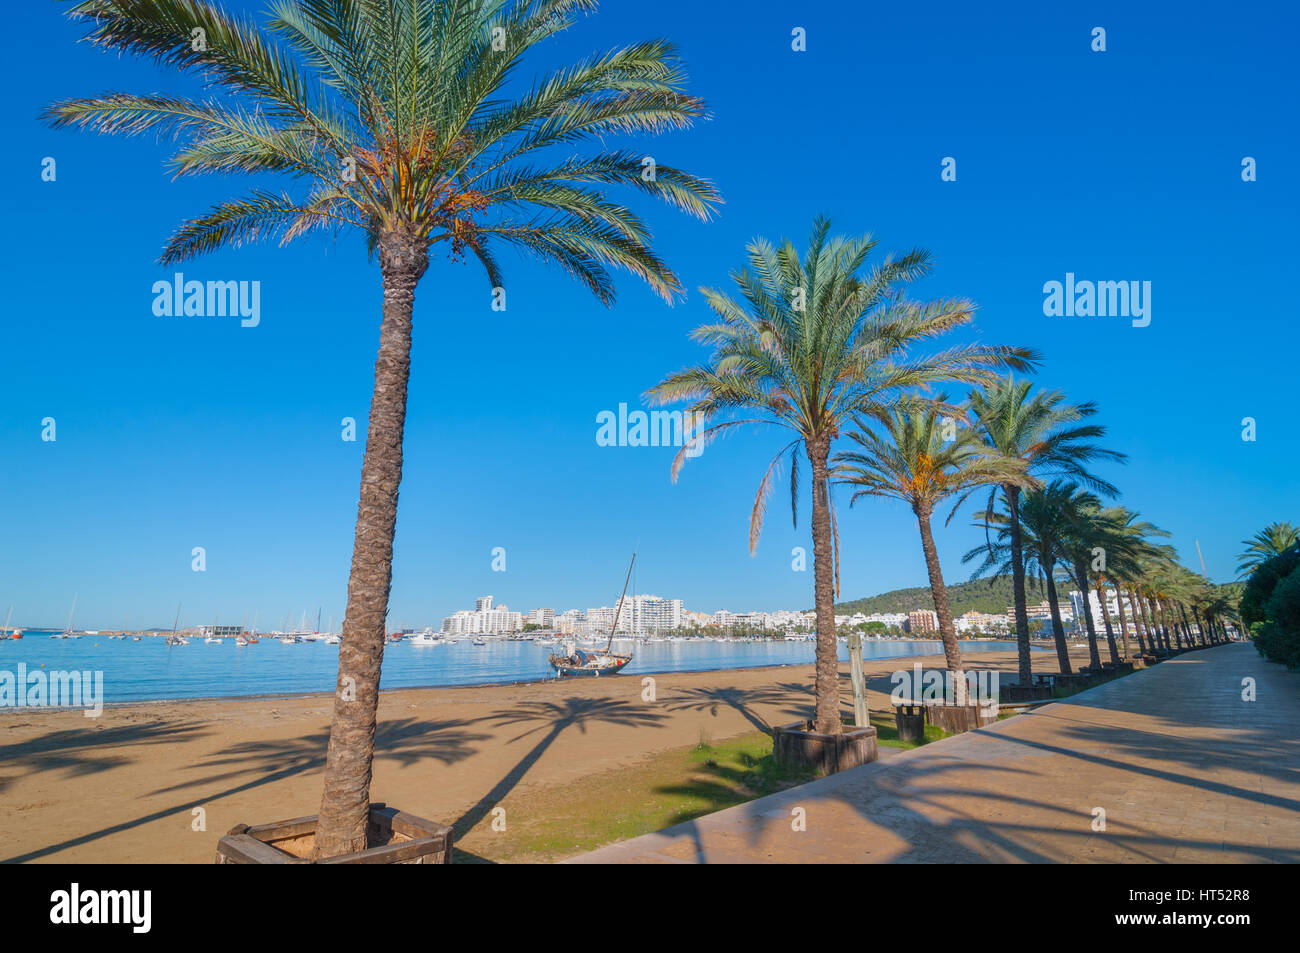 Mid morning sun, along beach near the city, sees an abandoned sailboat.  Rows of palm trees line the beach, sunny - Stock Image